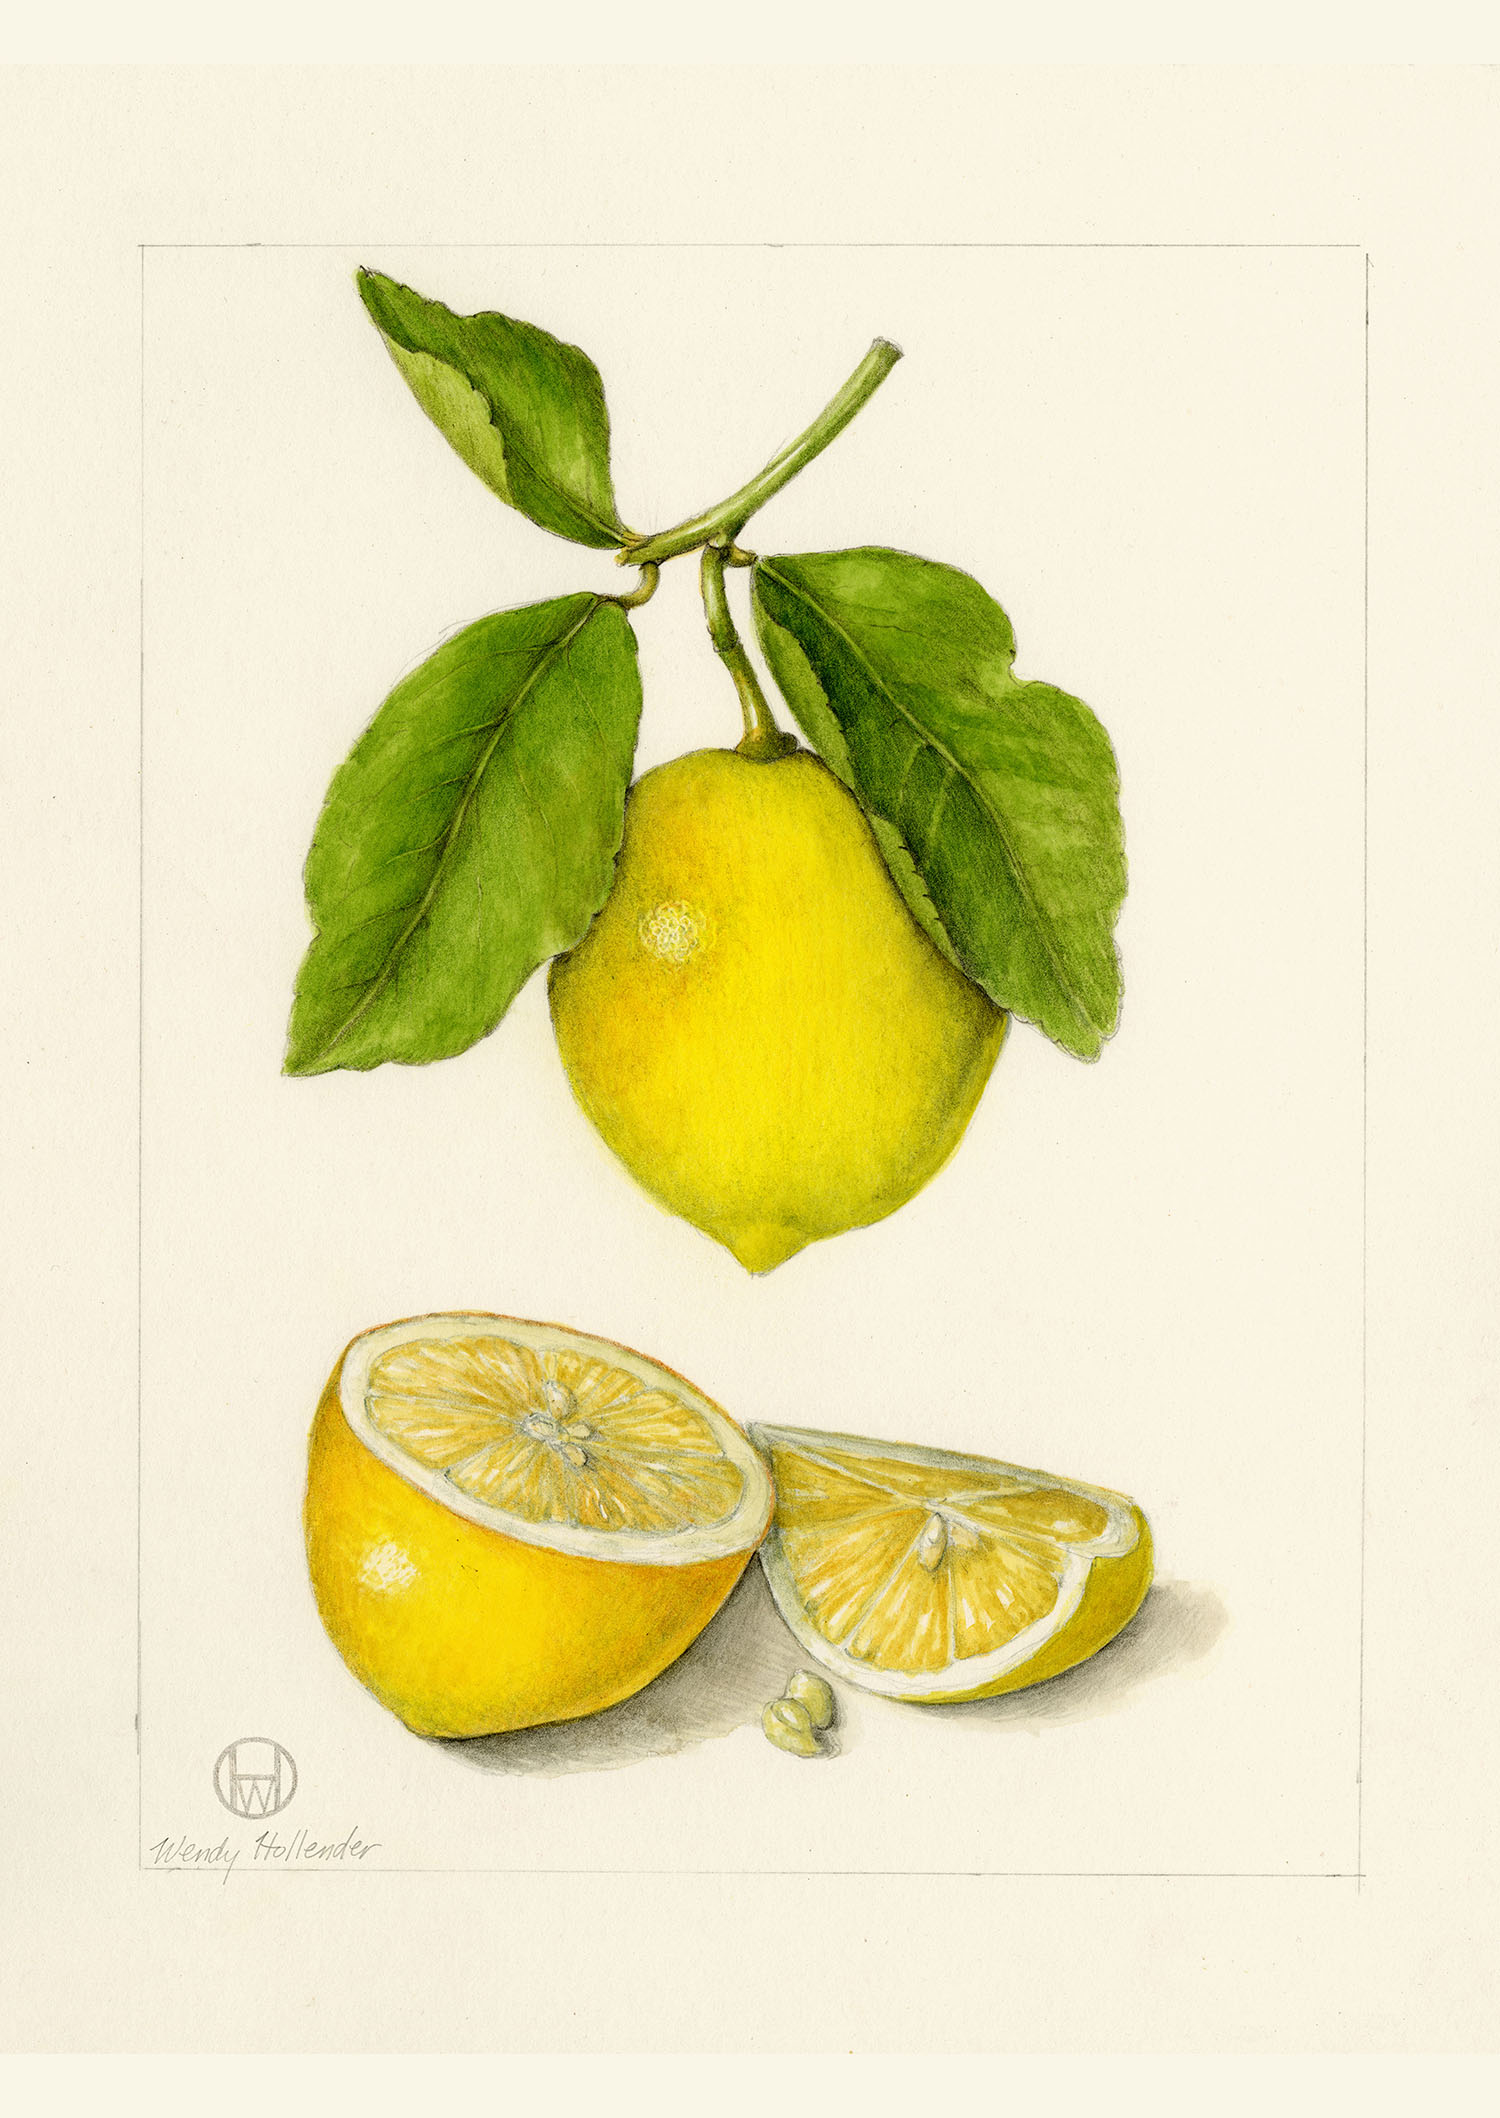 Meyer lemon - Citrus × meyeri